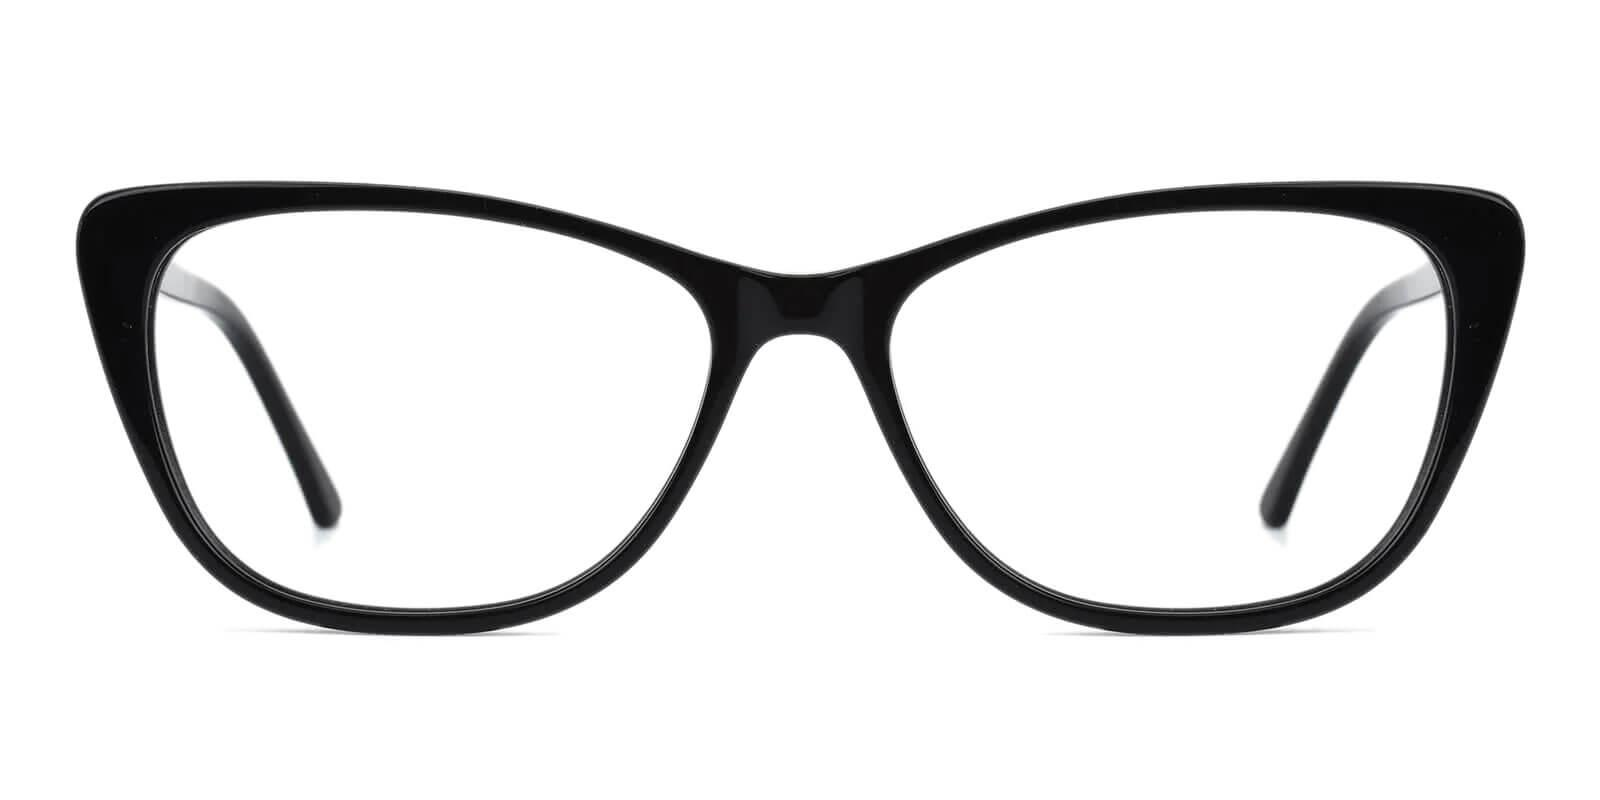 Yuke Black Acetate Eyeglasses , SpringHinges , UniversalBridgeFit Frames from ABBE Glasses